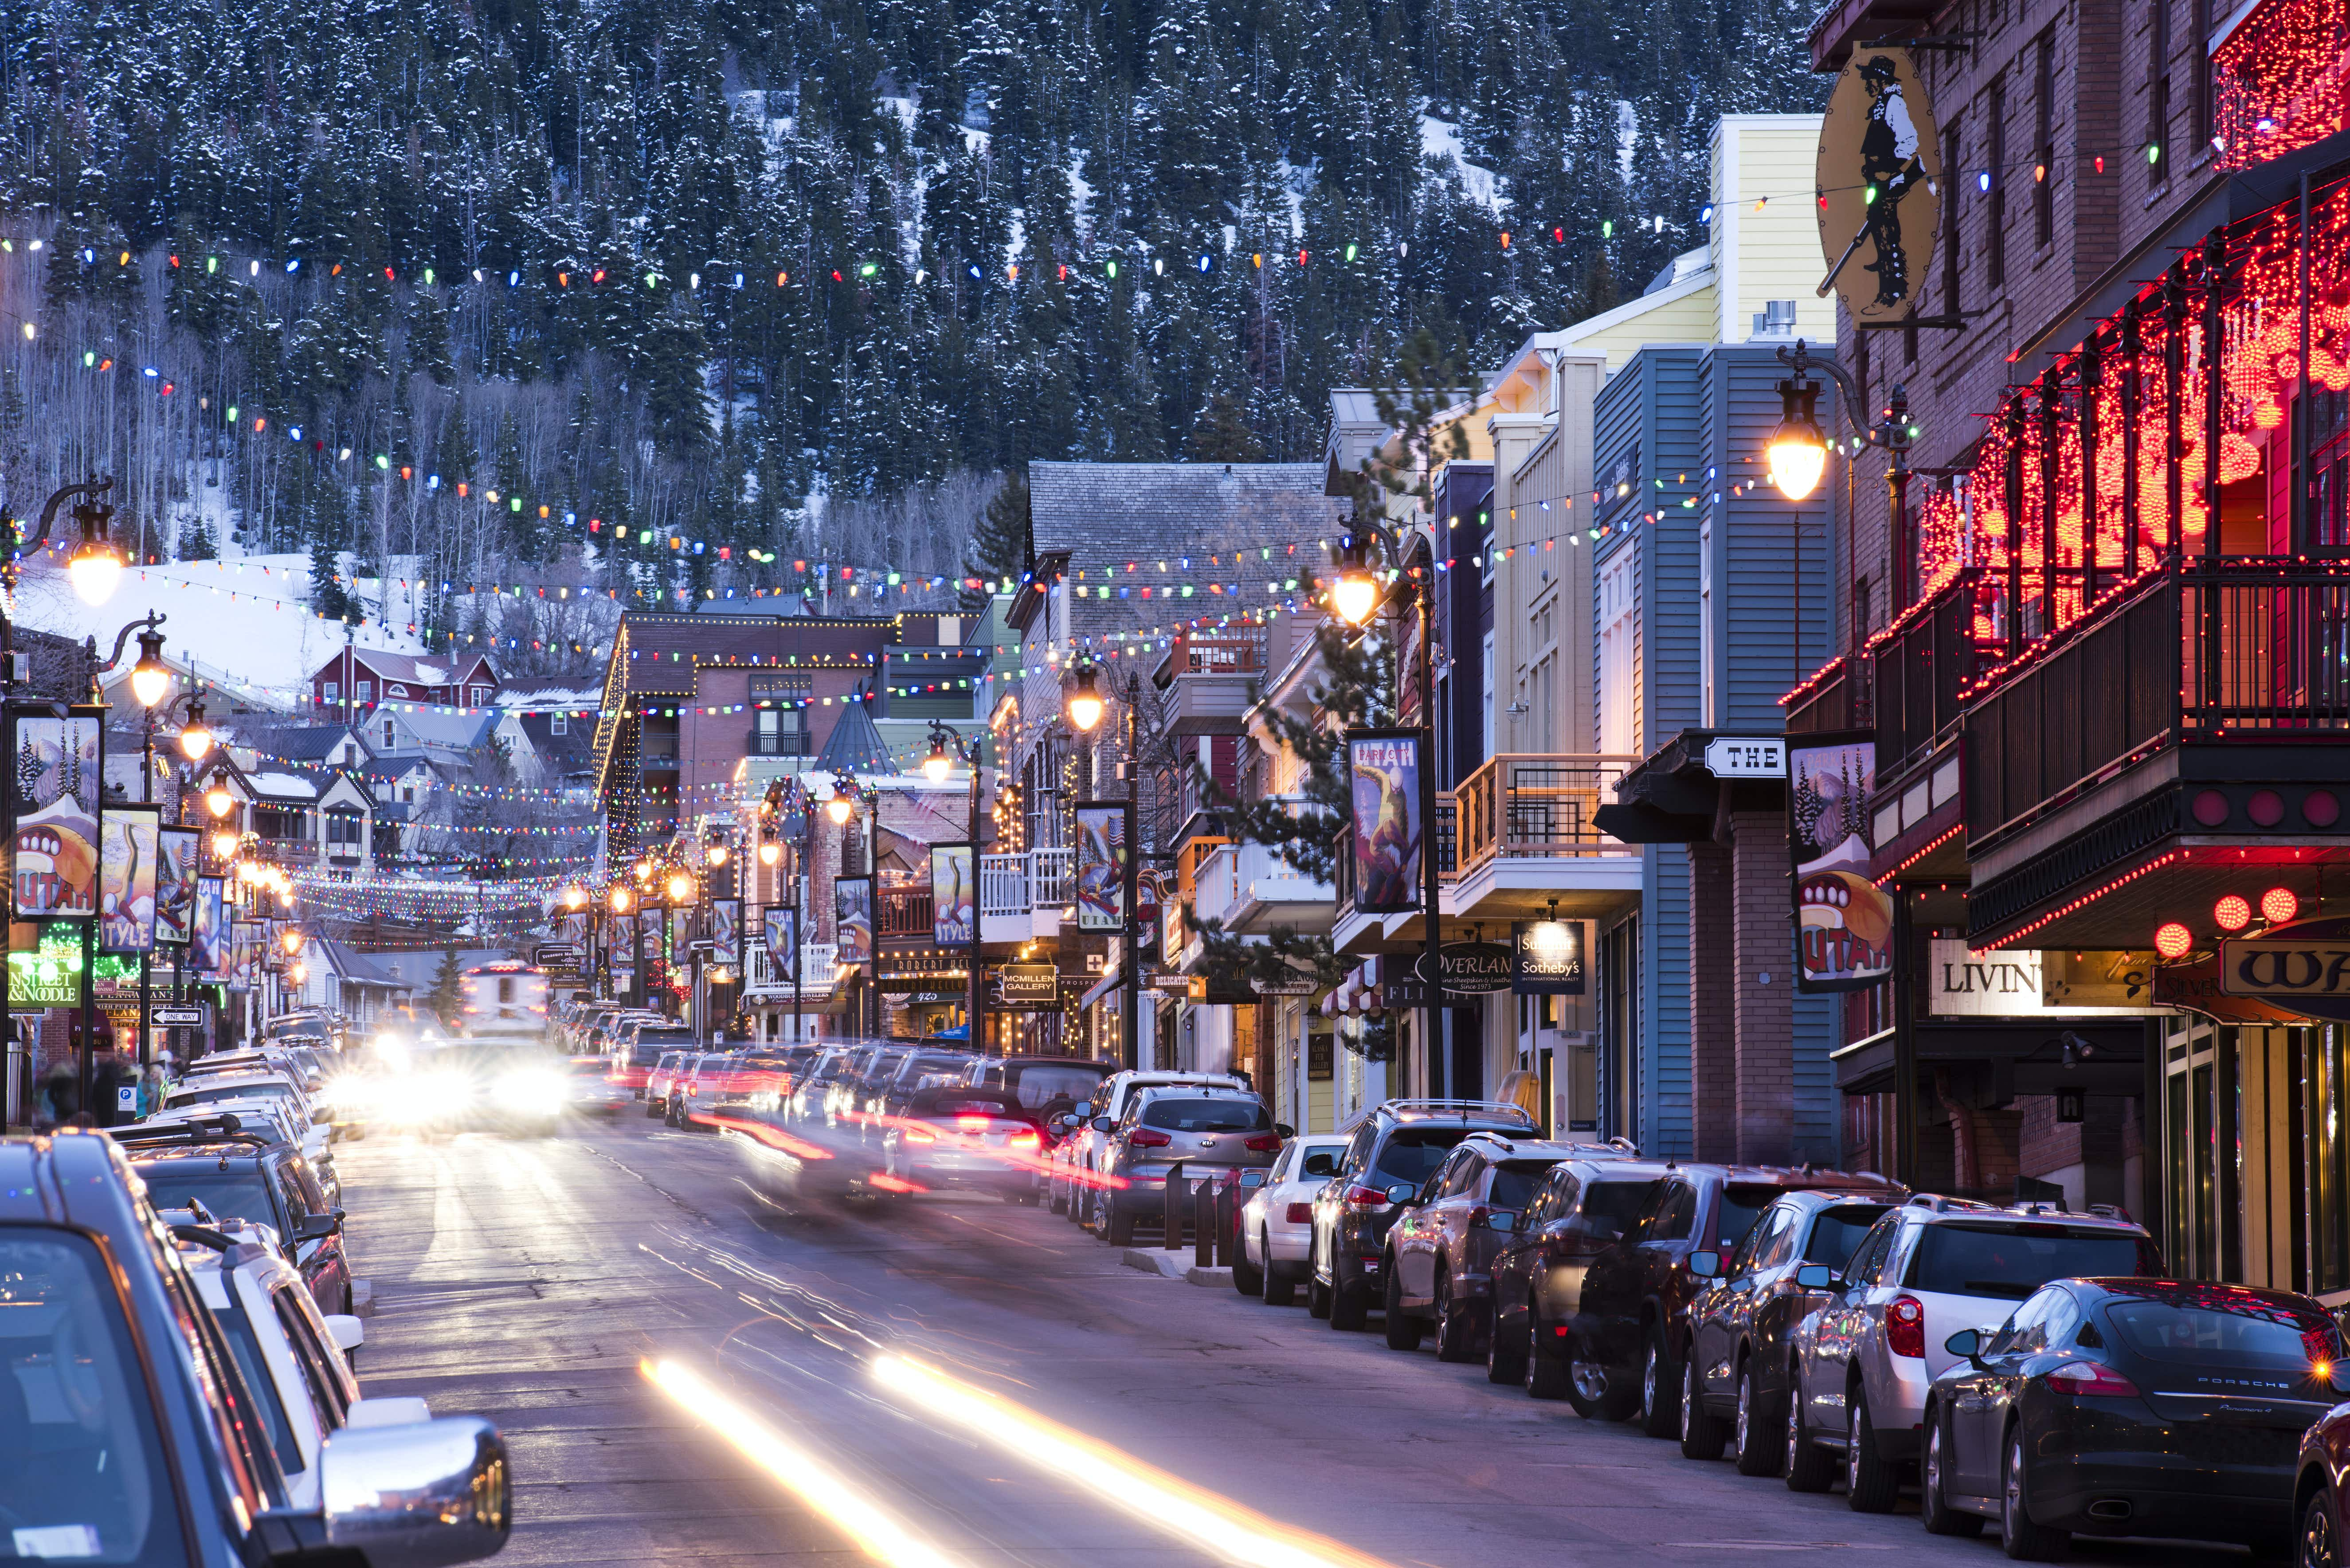 A first-timer's guide to the Sundance Film Festival